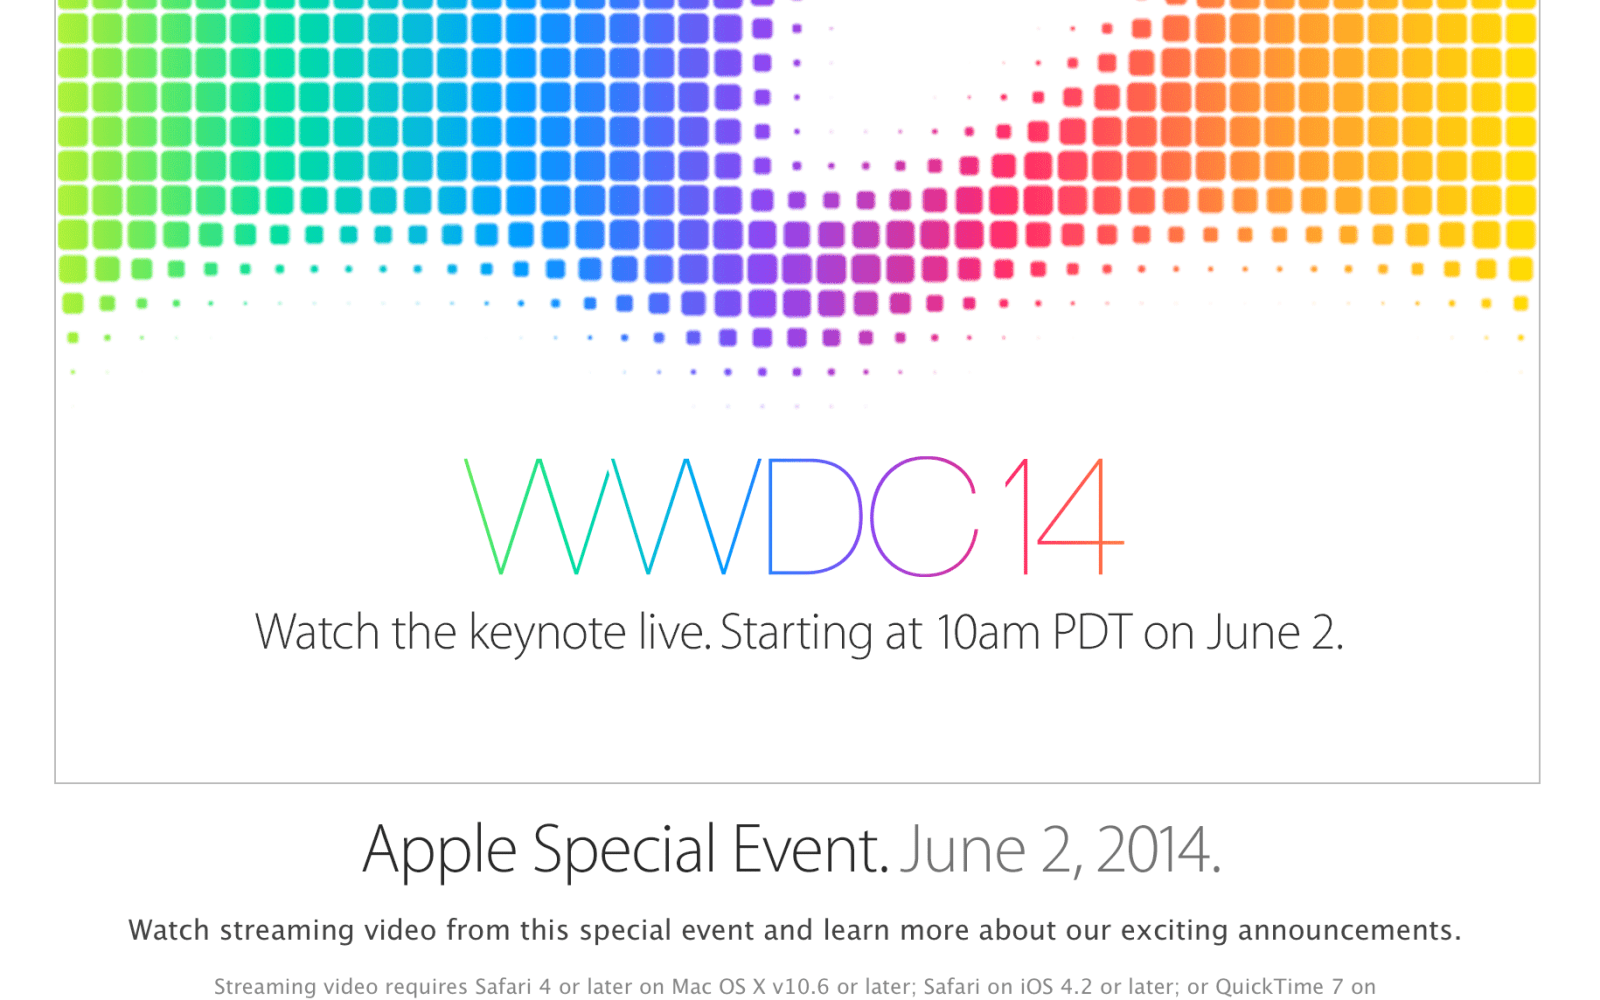 Apple to live stream 'exciting' WWDC keynote for everyone to watch